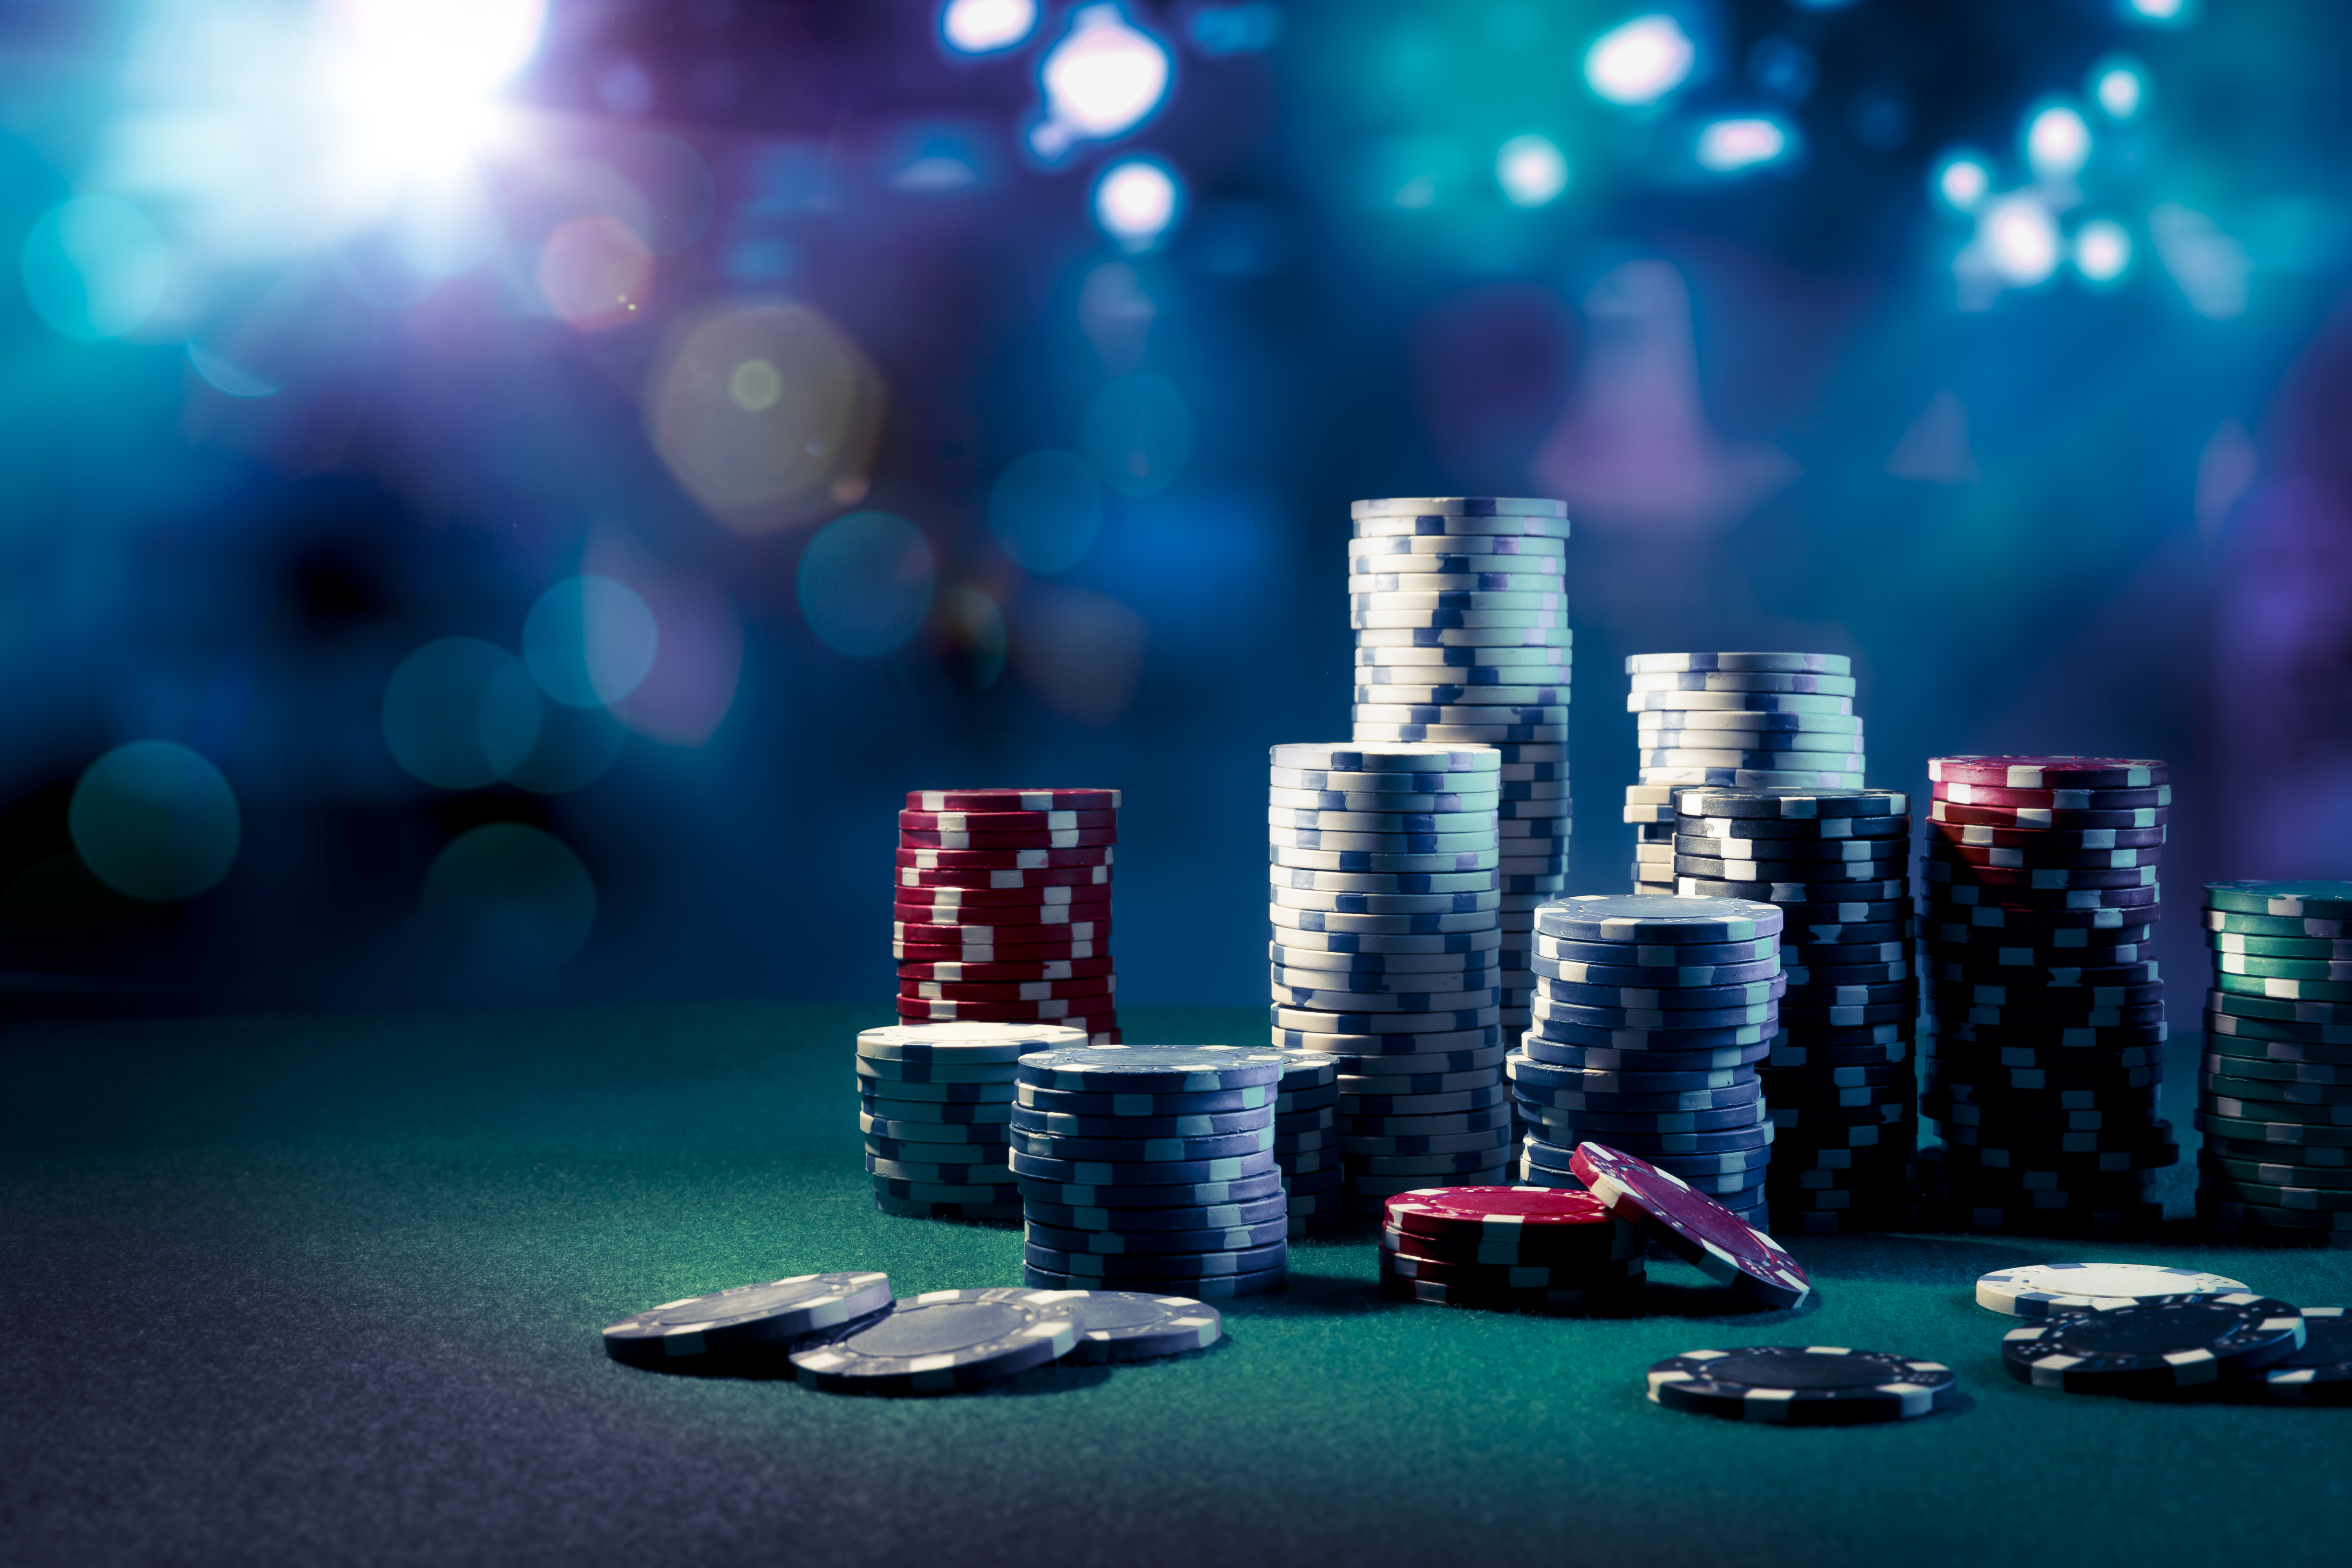 Nice wallpapers Poker 5760x3840px